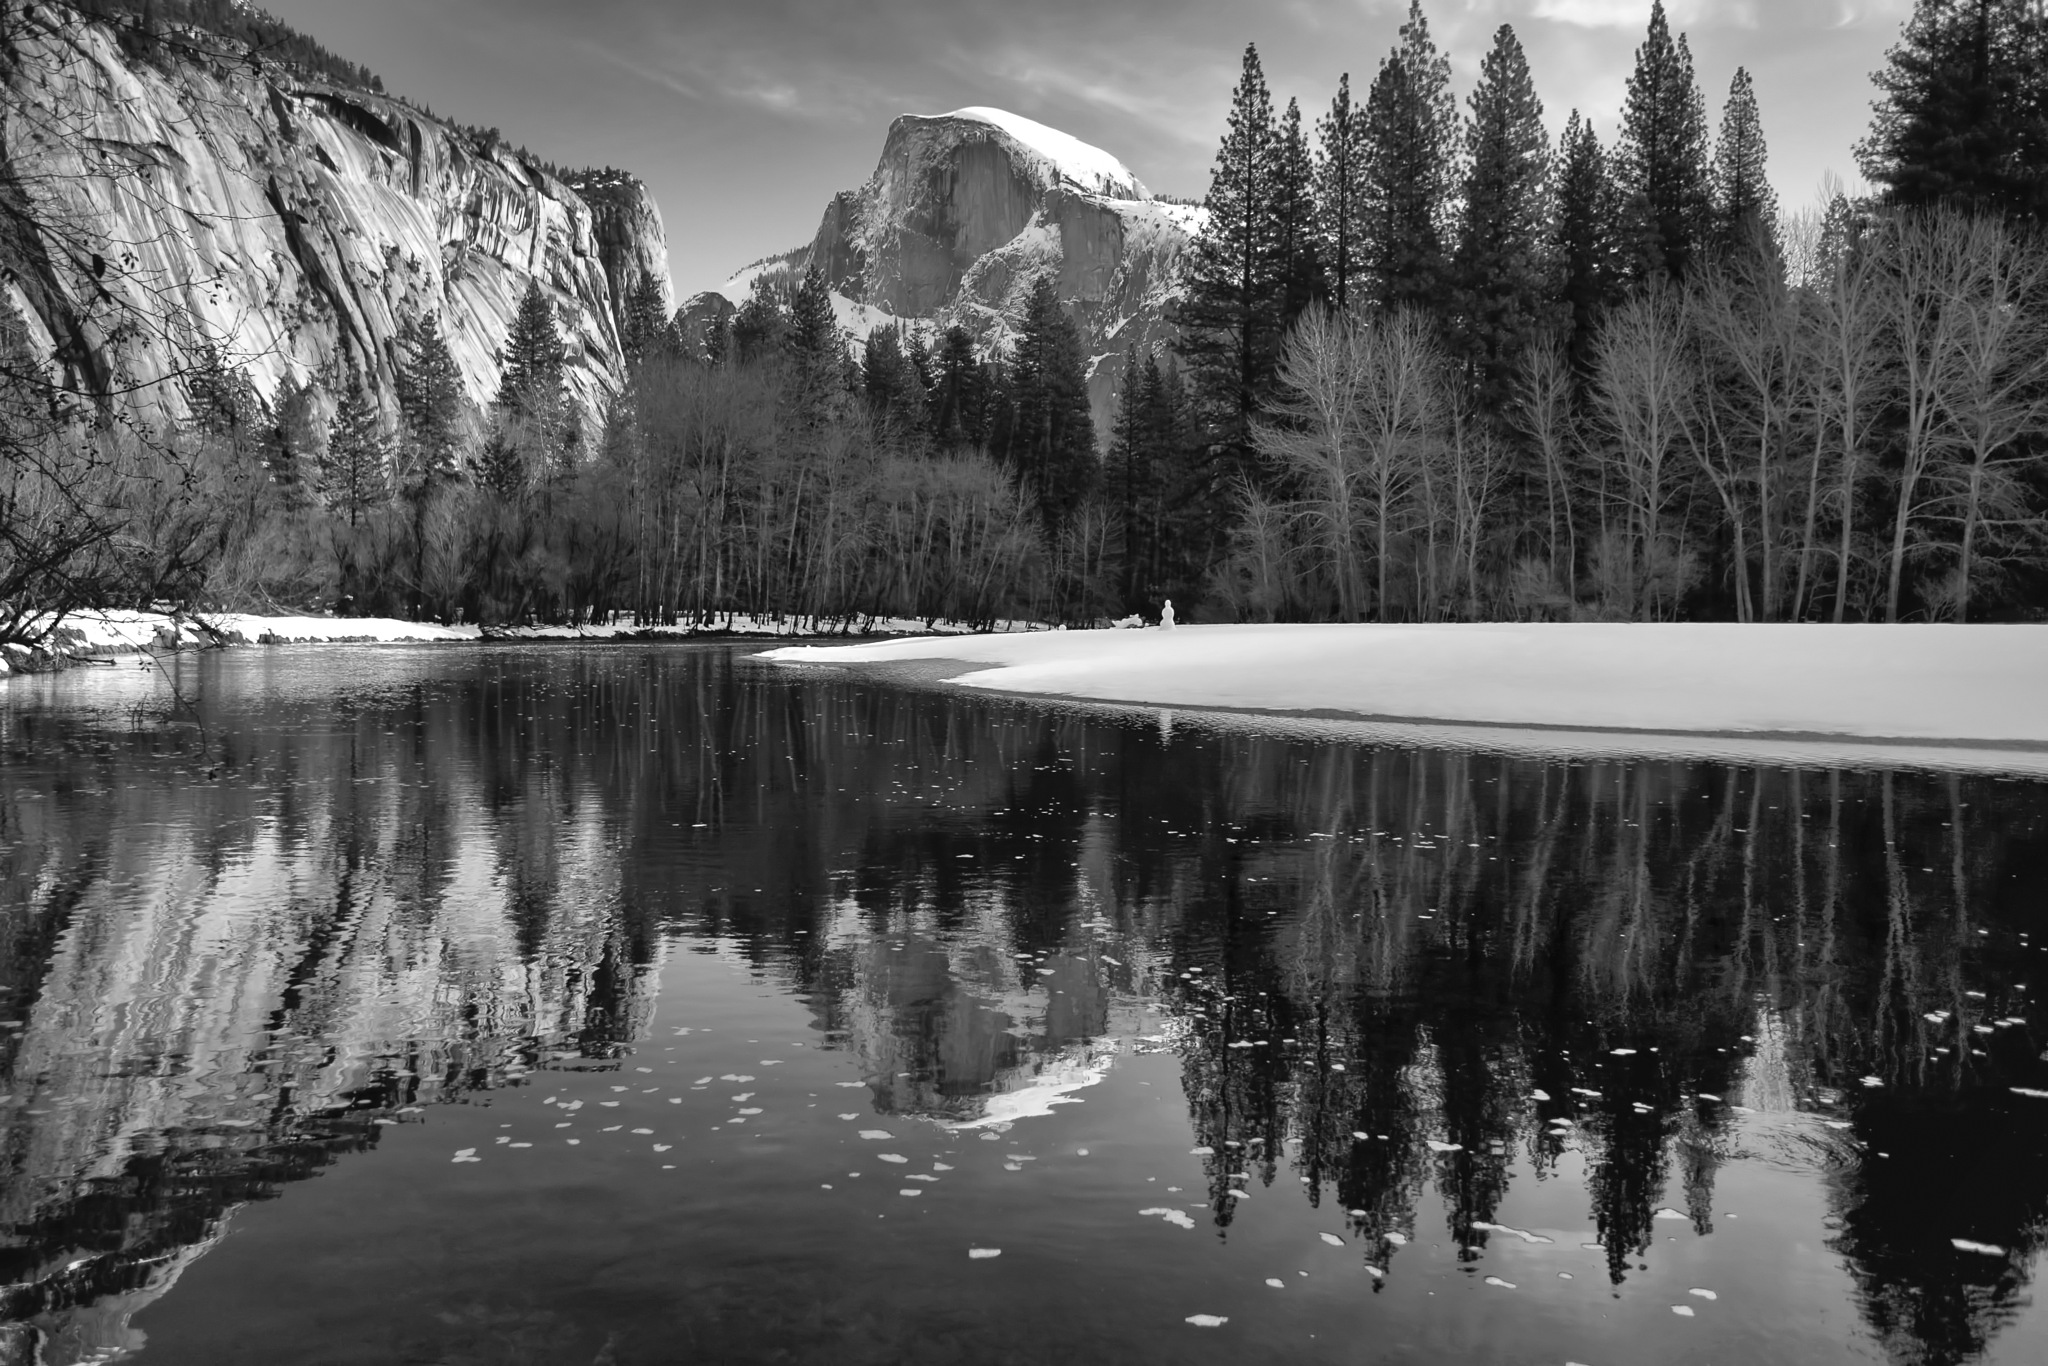 The Half Dome by Christine C. Abad